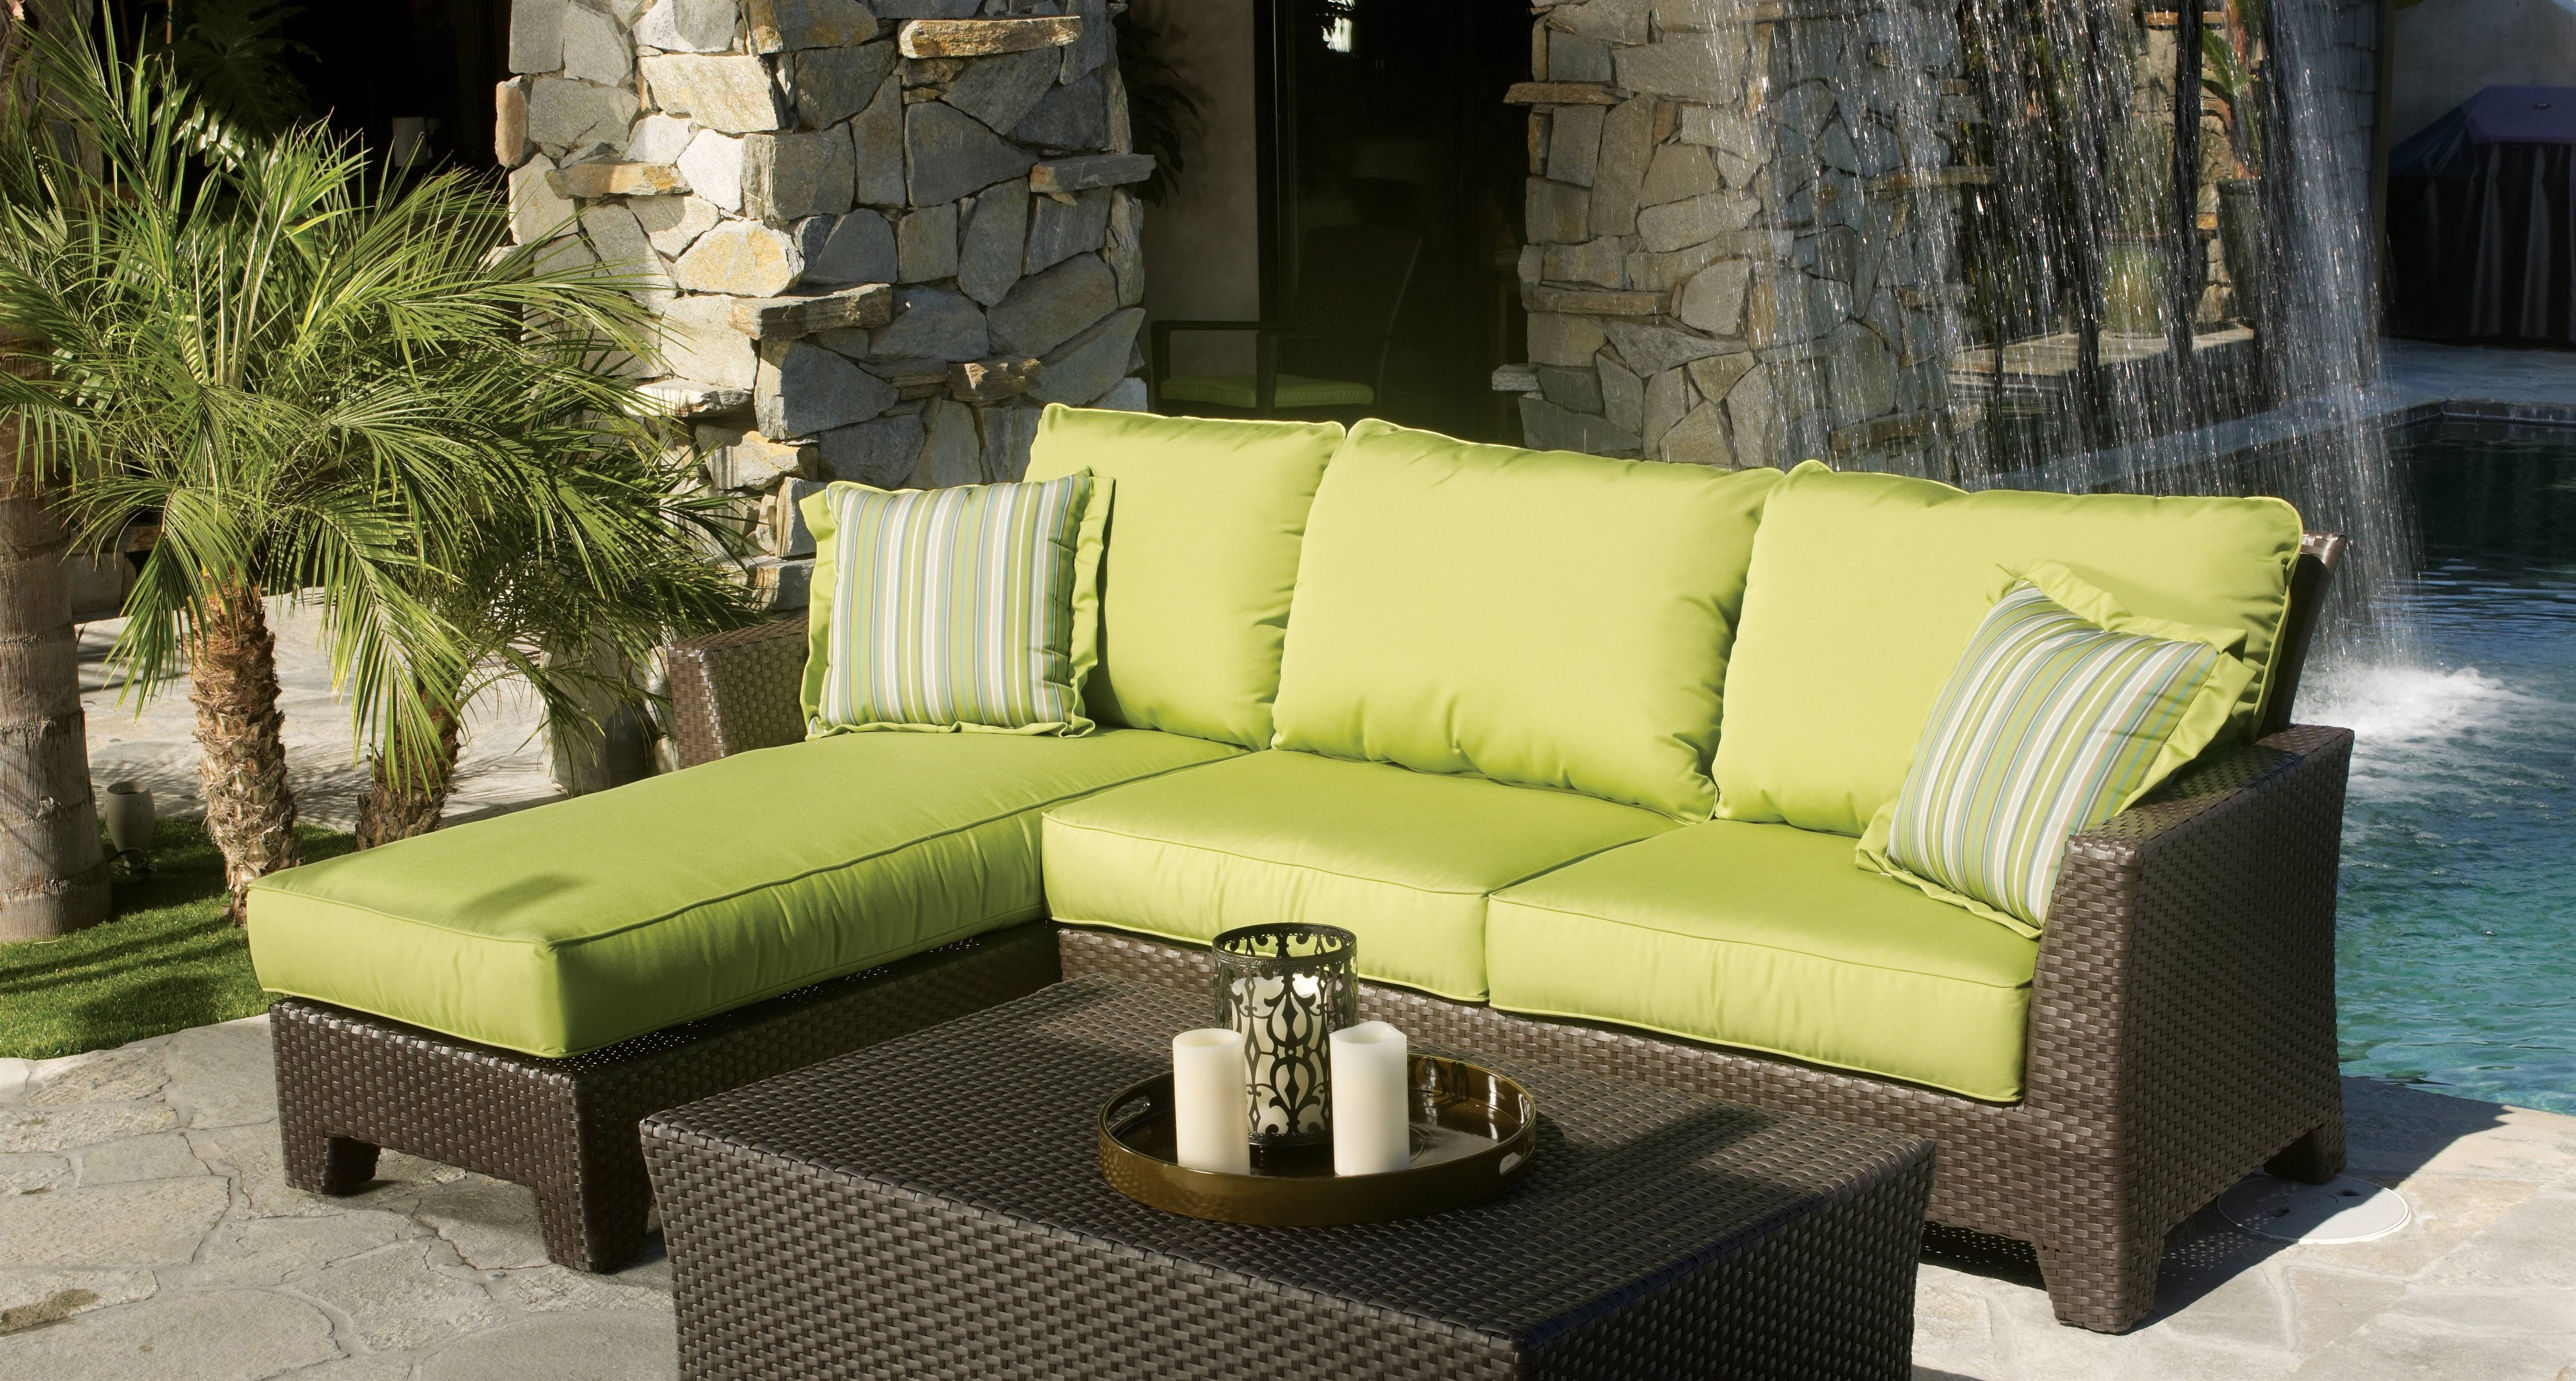 Feel The Grace Of Your Interior With Long Sectional Sofa Clearance regarding Clearance Sectional Sofas (Image 7 of 15)